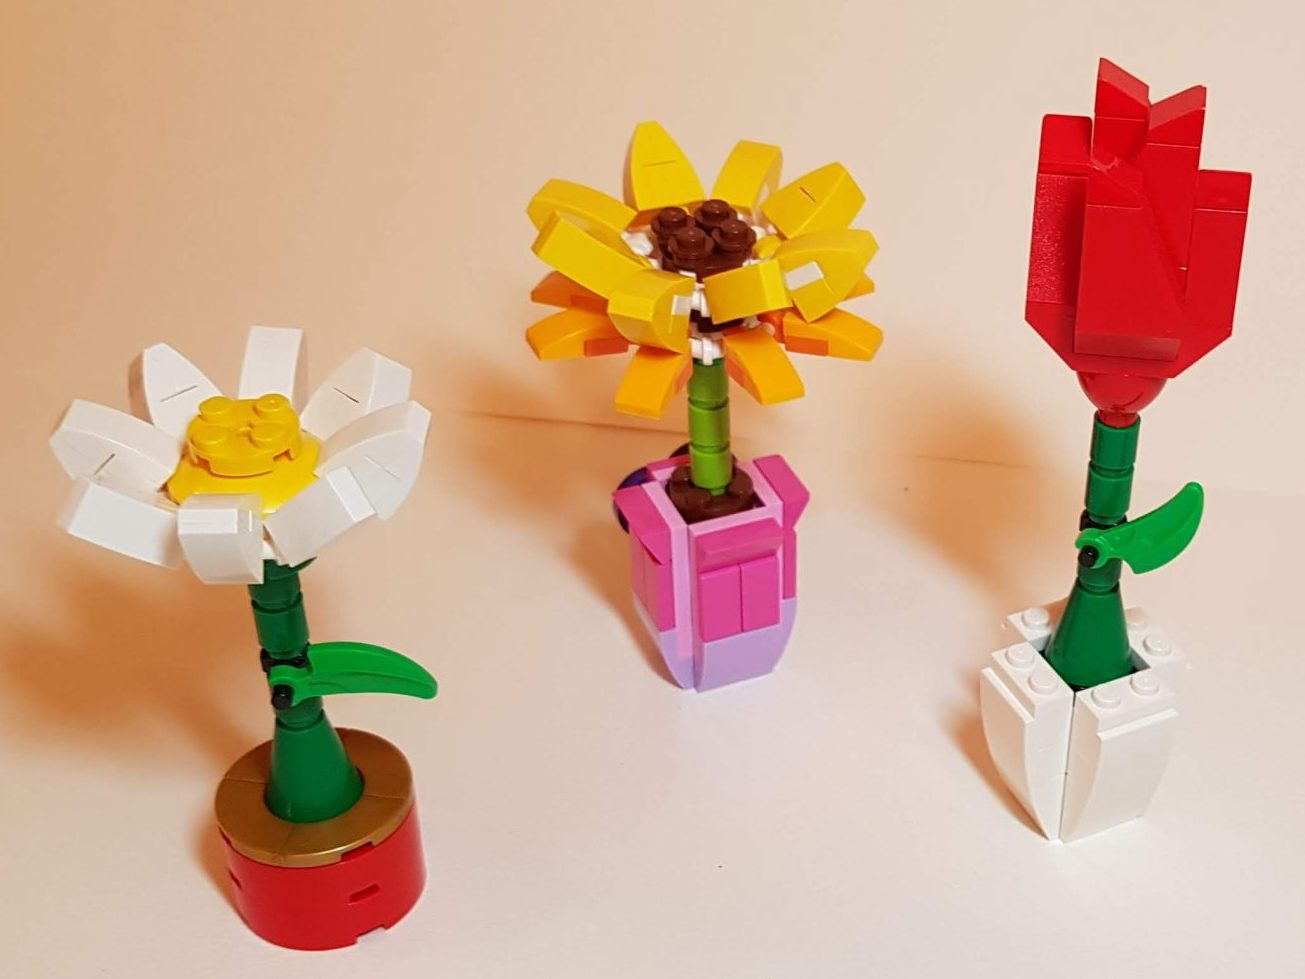 Flowers (LEGO 40187 & 30404) - Built By Wright Built